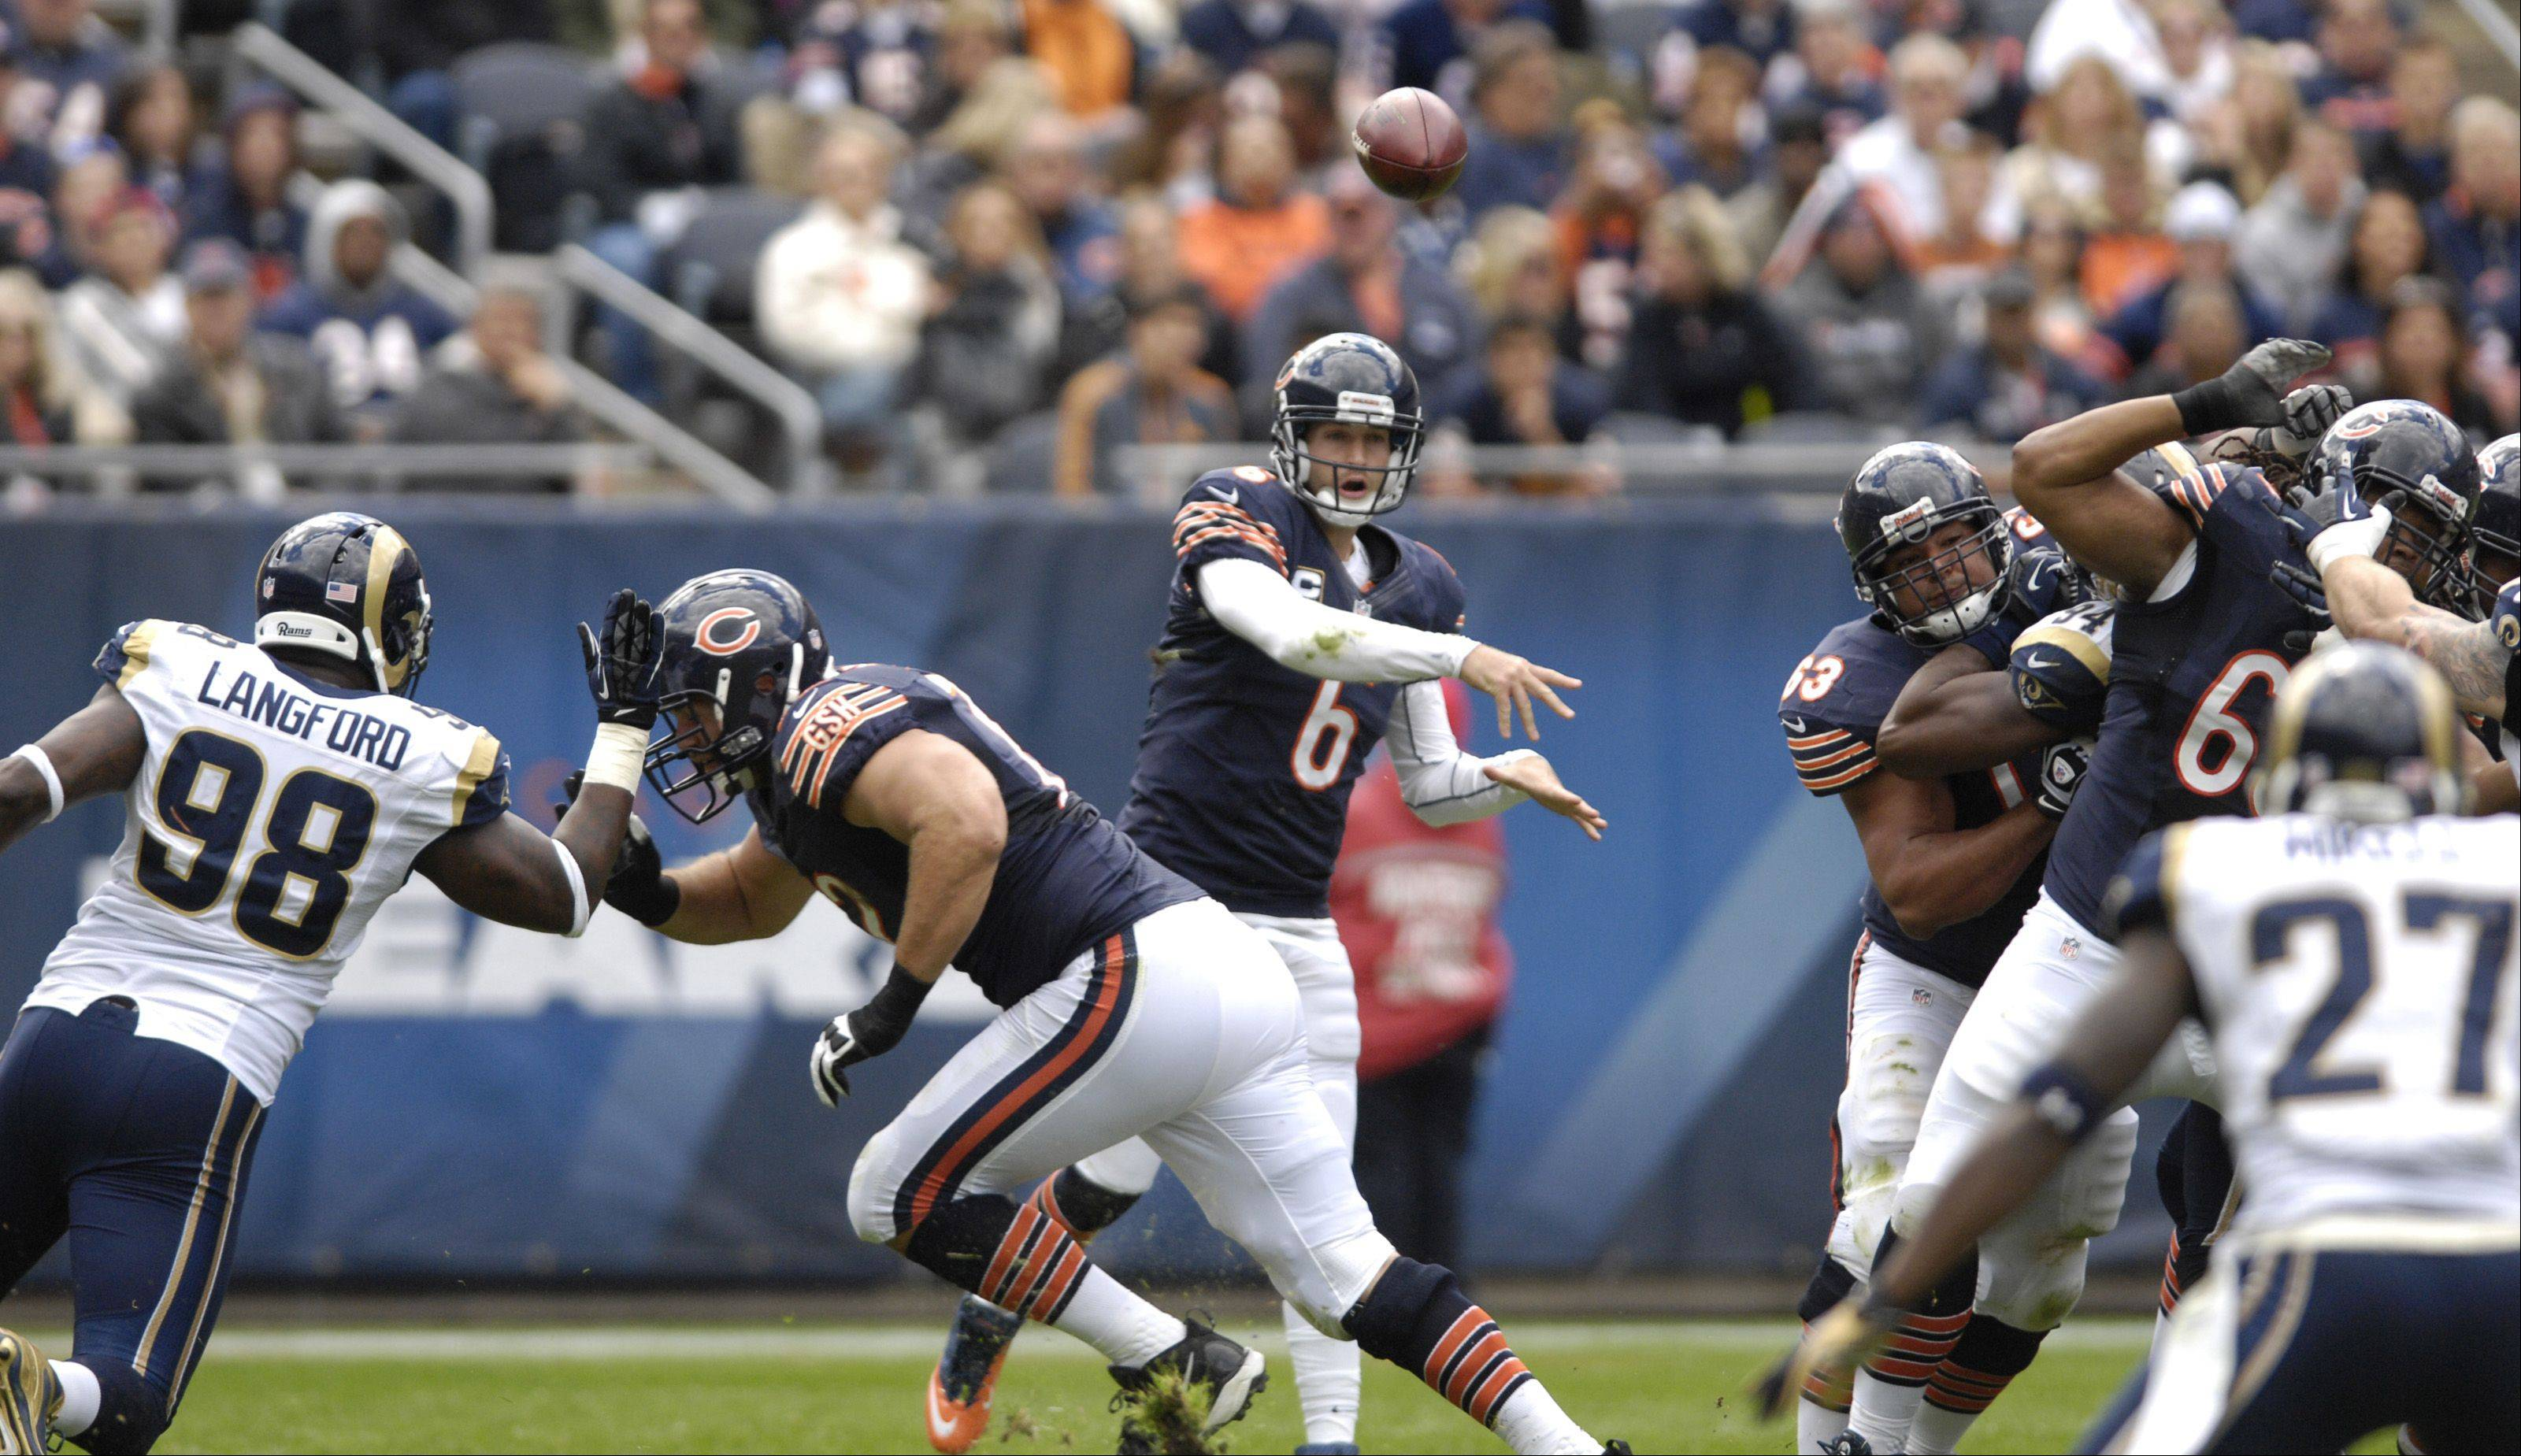 Chicago Bears quarterback Jay Cutler passes the ball during play against the St. Louis Rams at Soldier Field in Chicago.